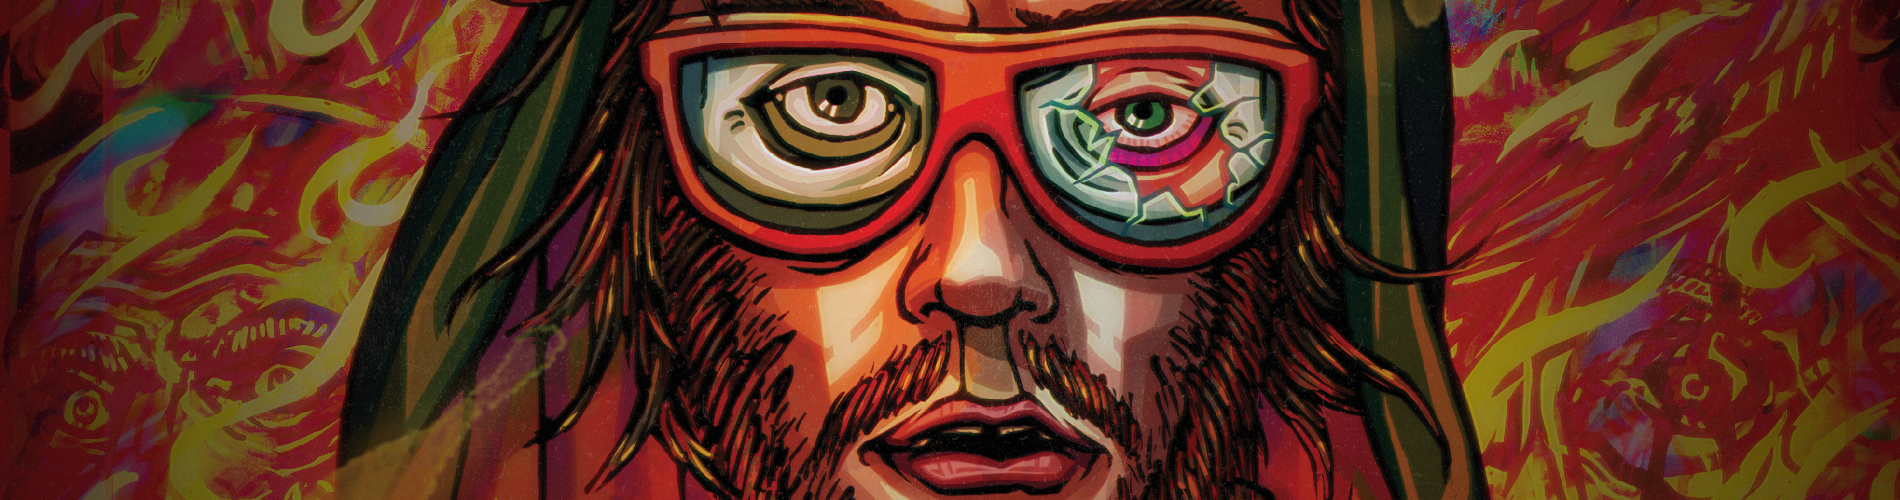 hotlinemiami2banner